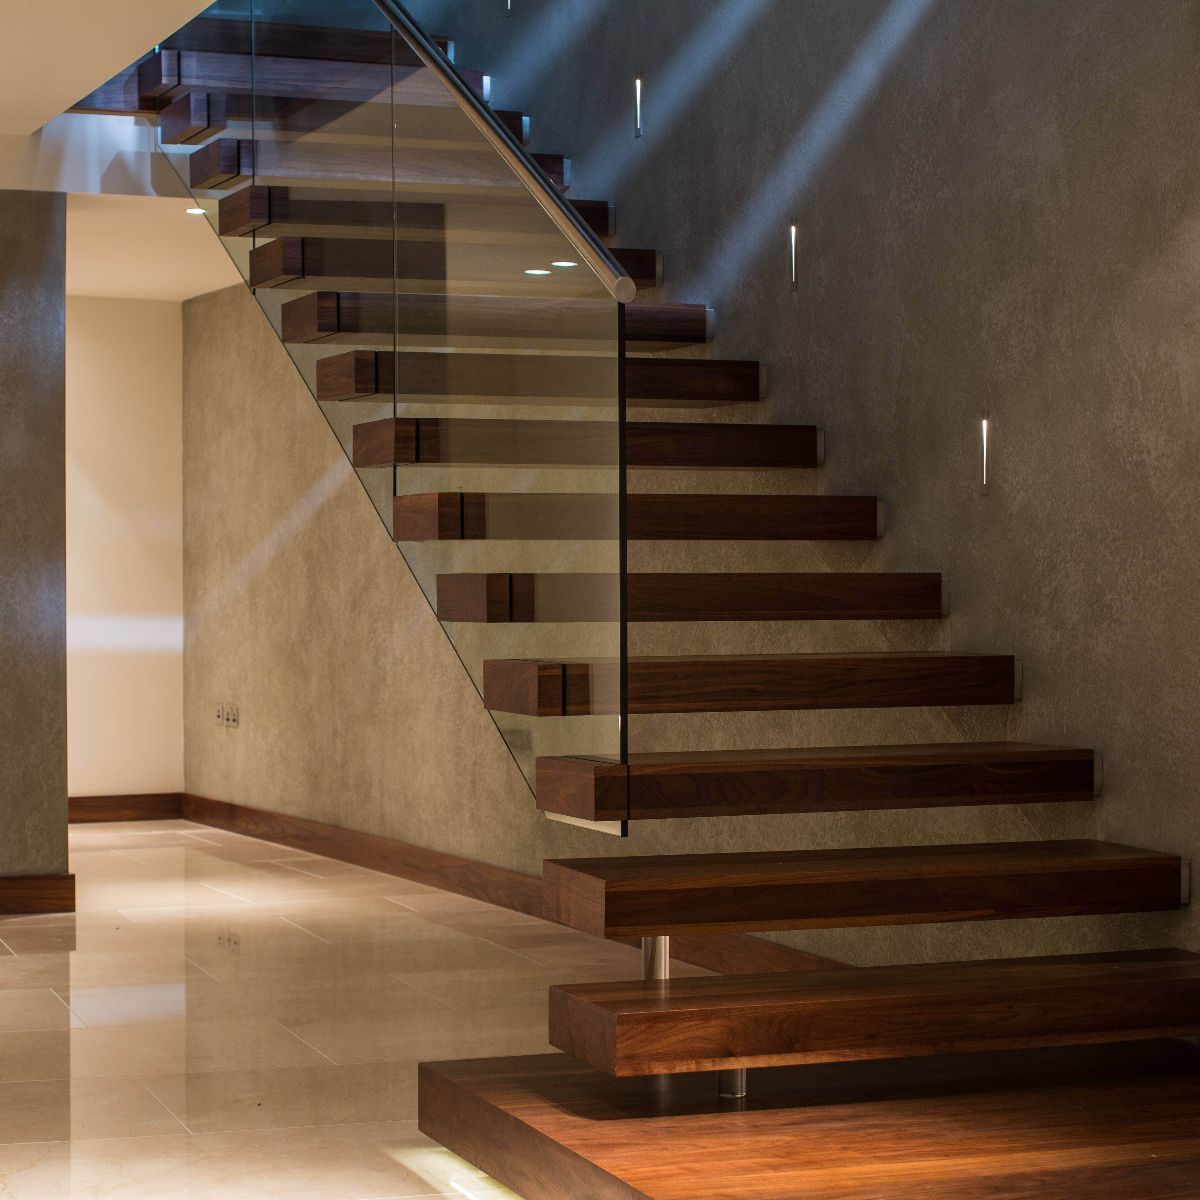 Floating staircase with glass for basement stairs with wine cellar  underneath